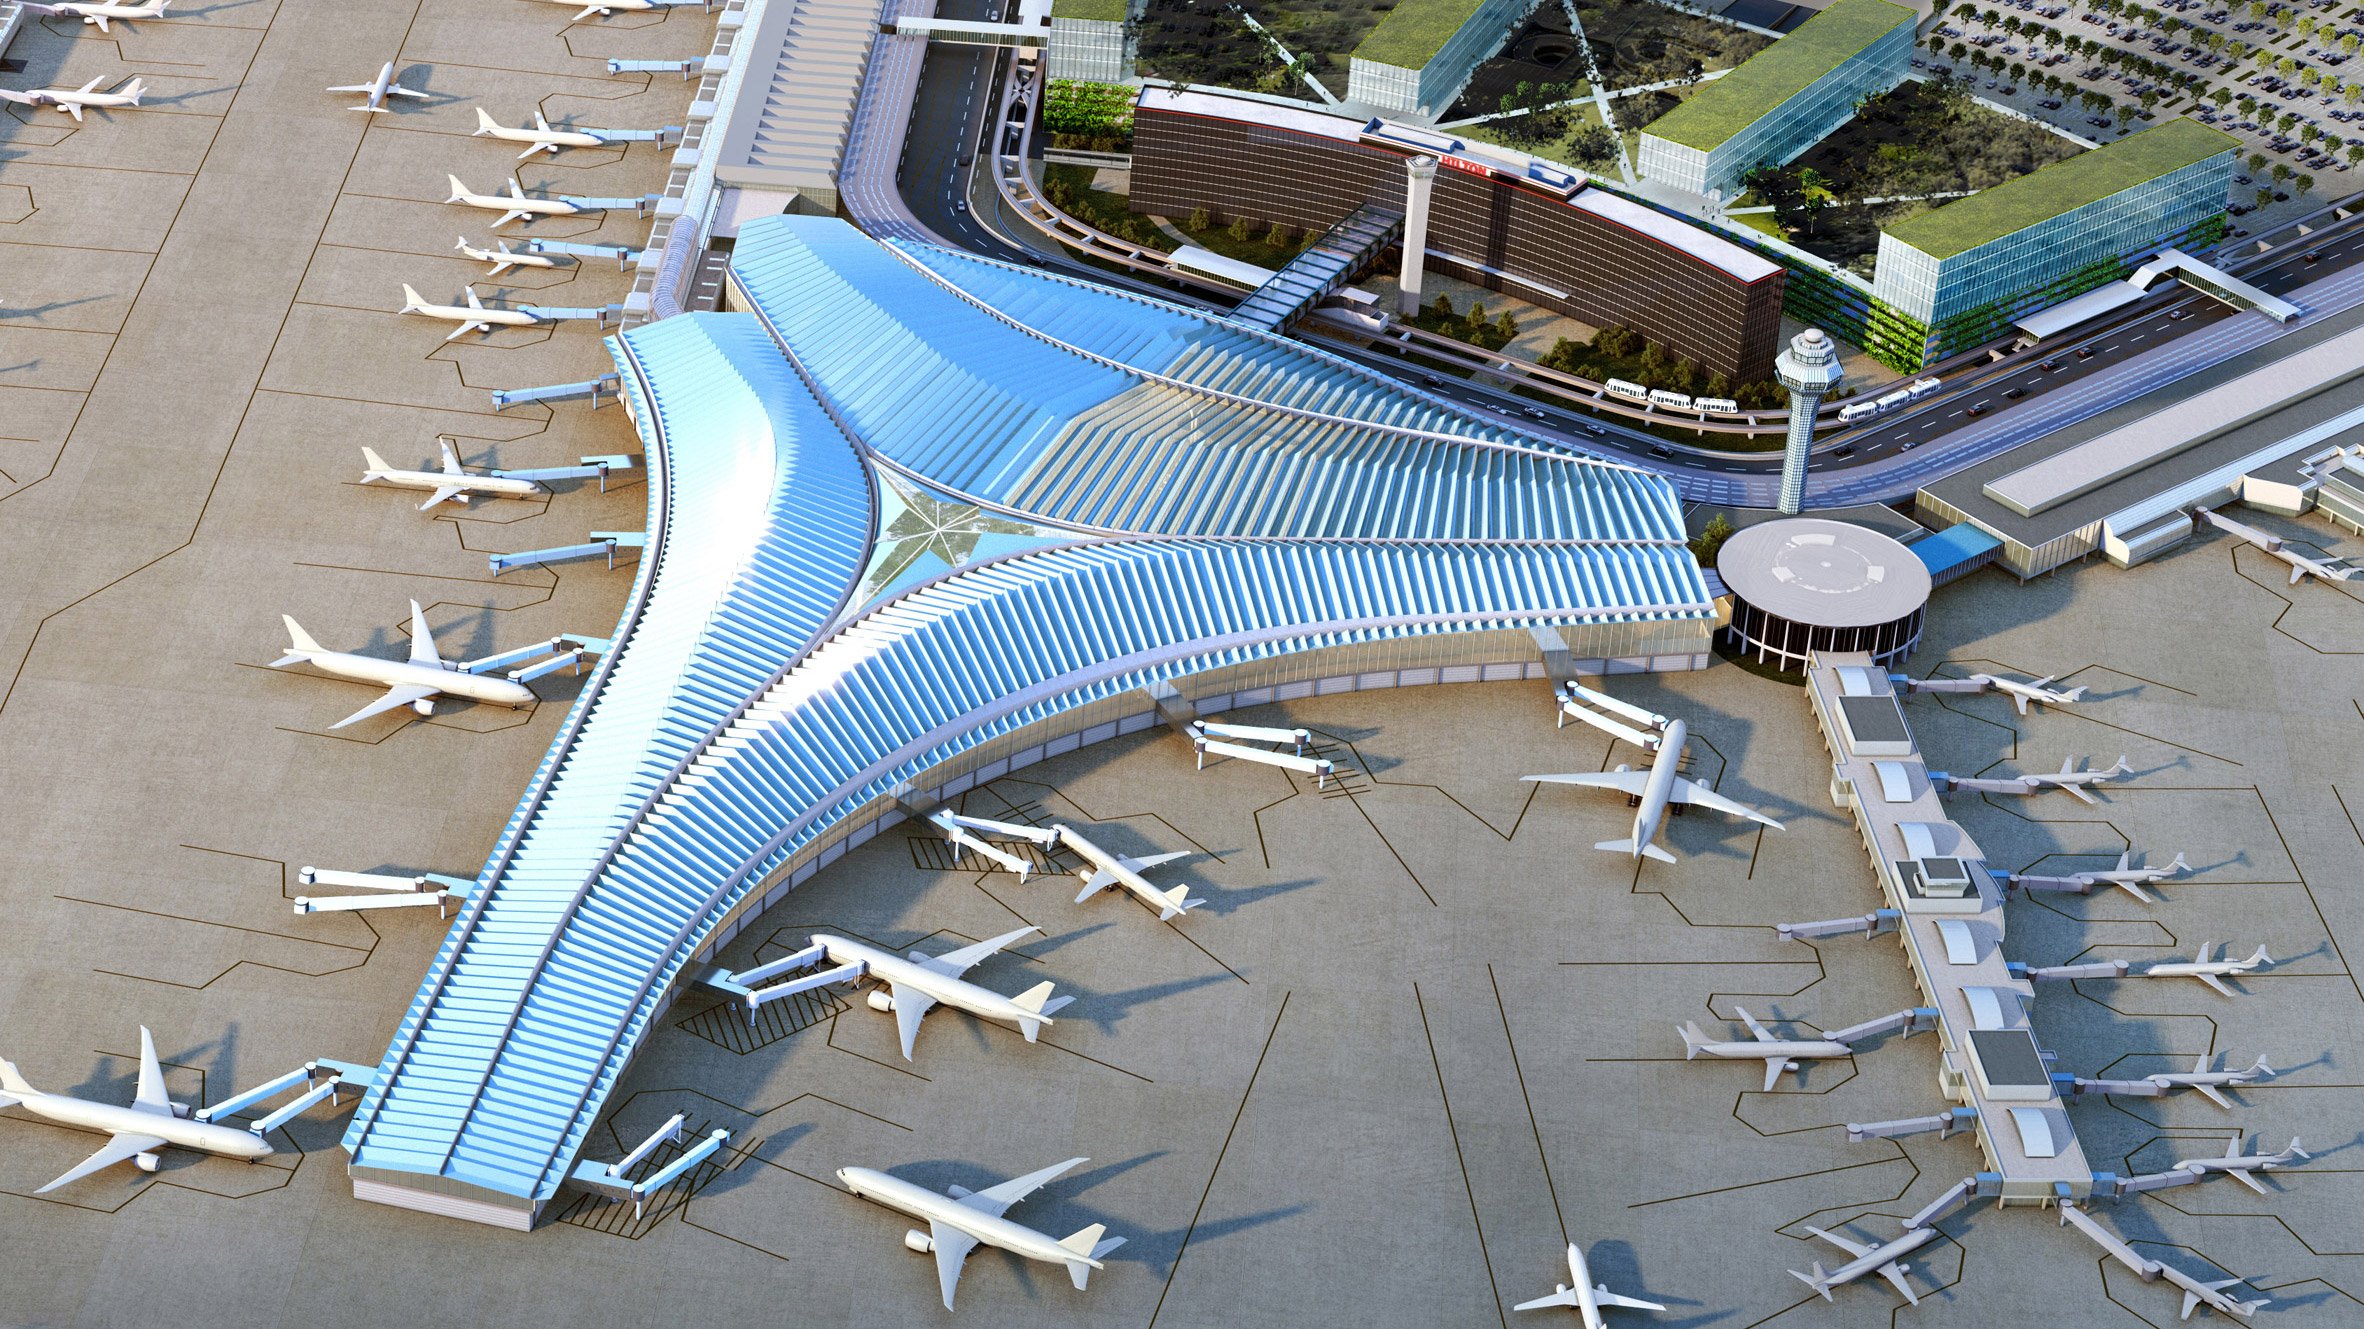 This week on Dezeen: Chicago O'Hare airport terminal